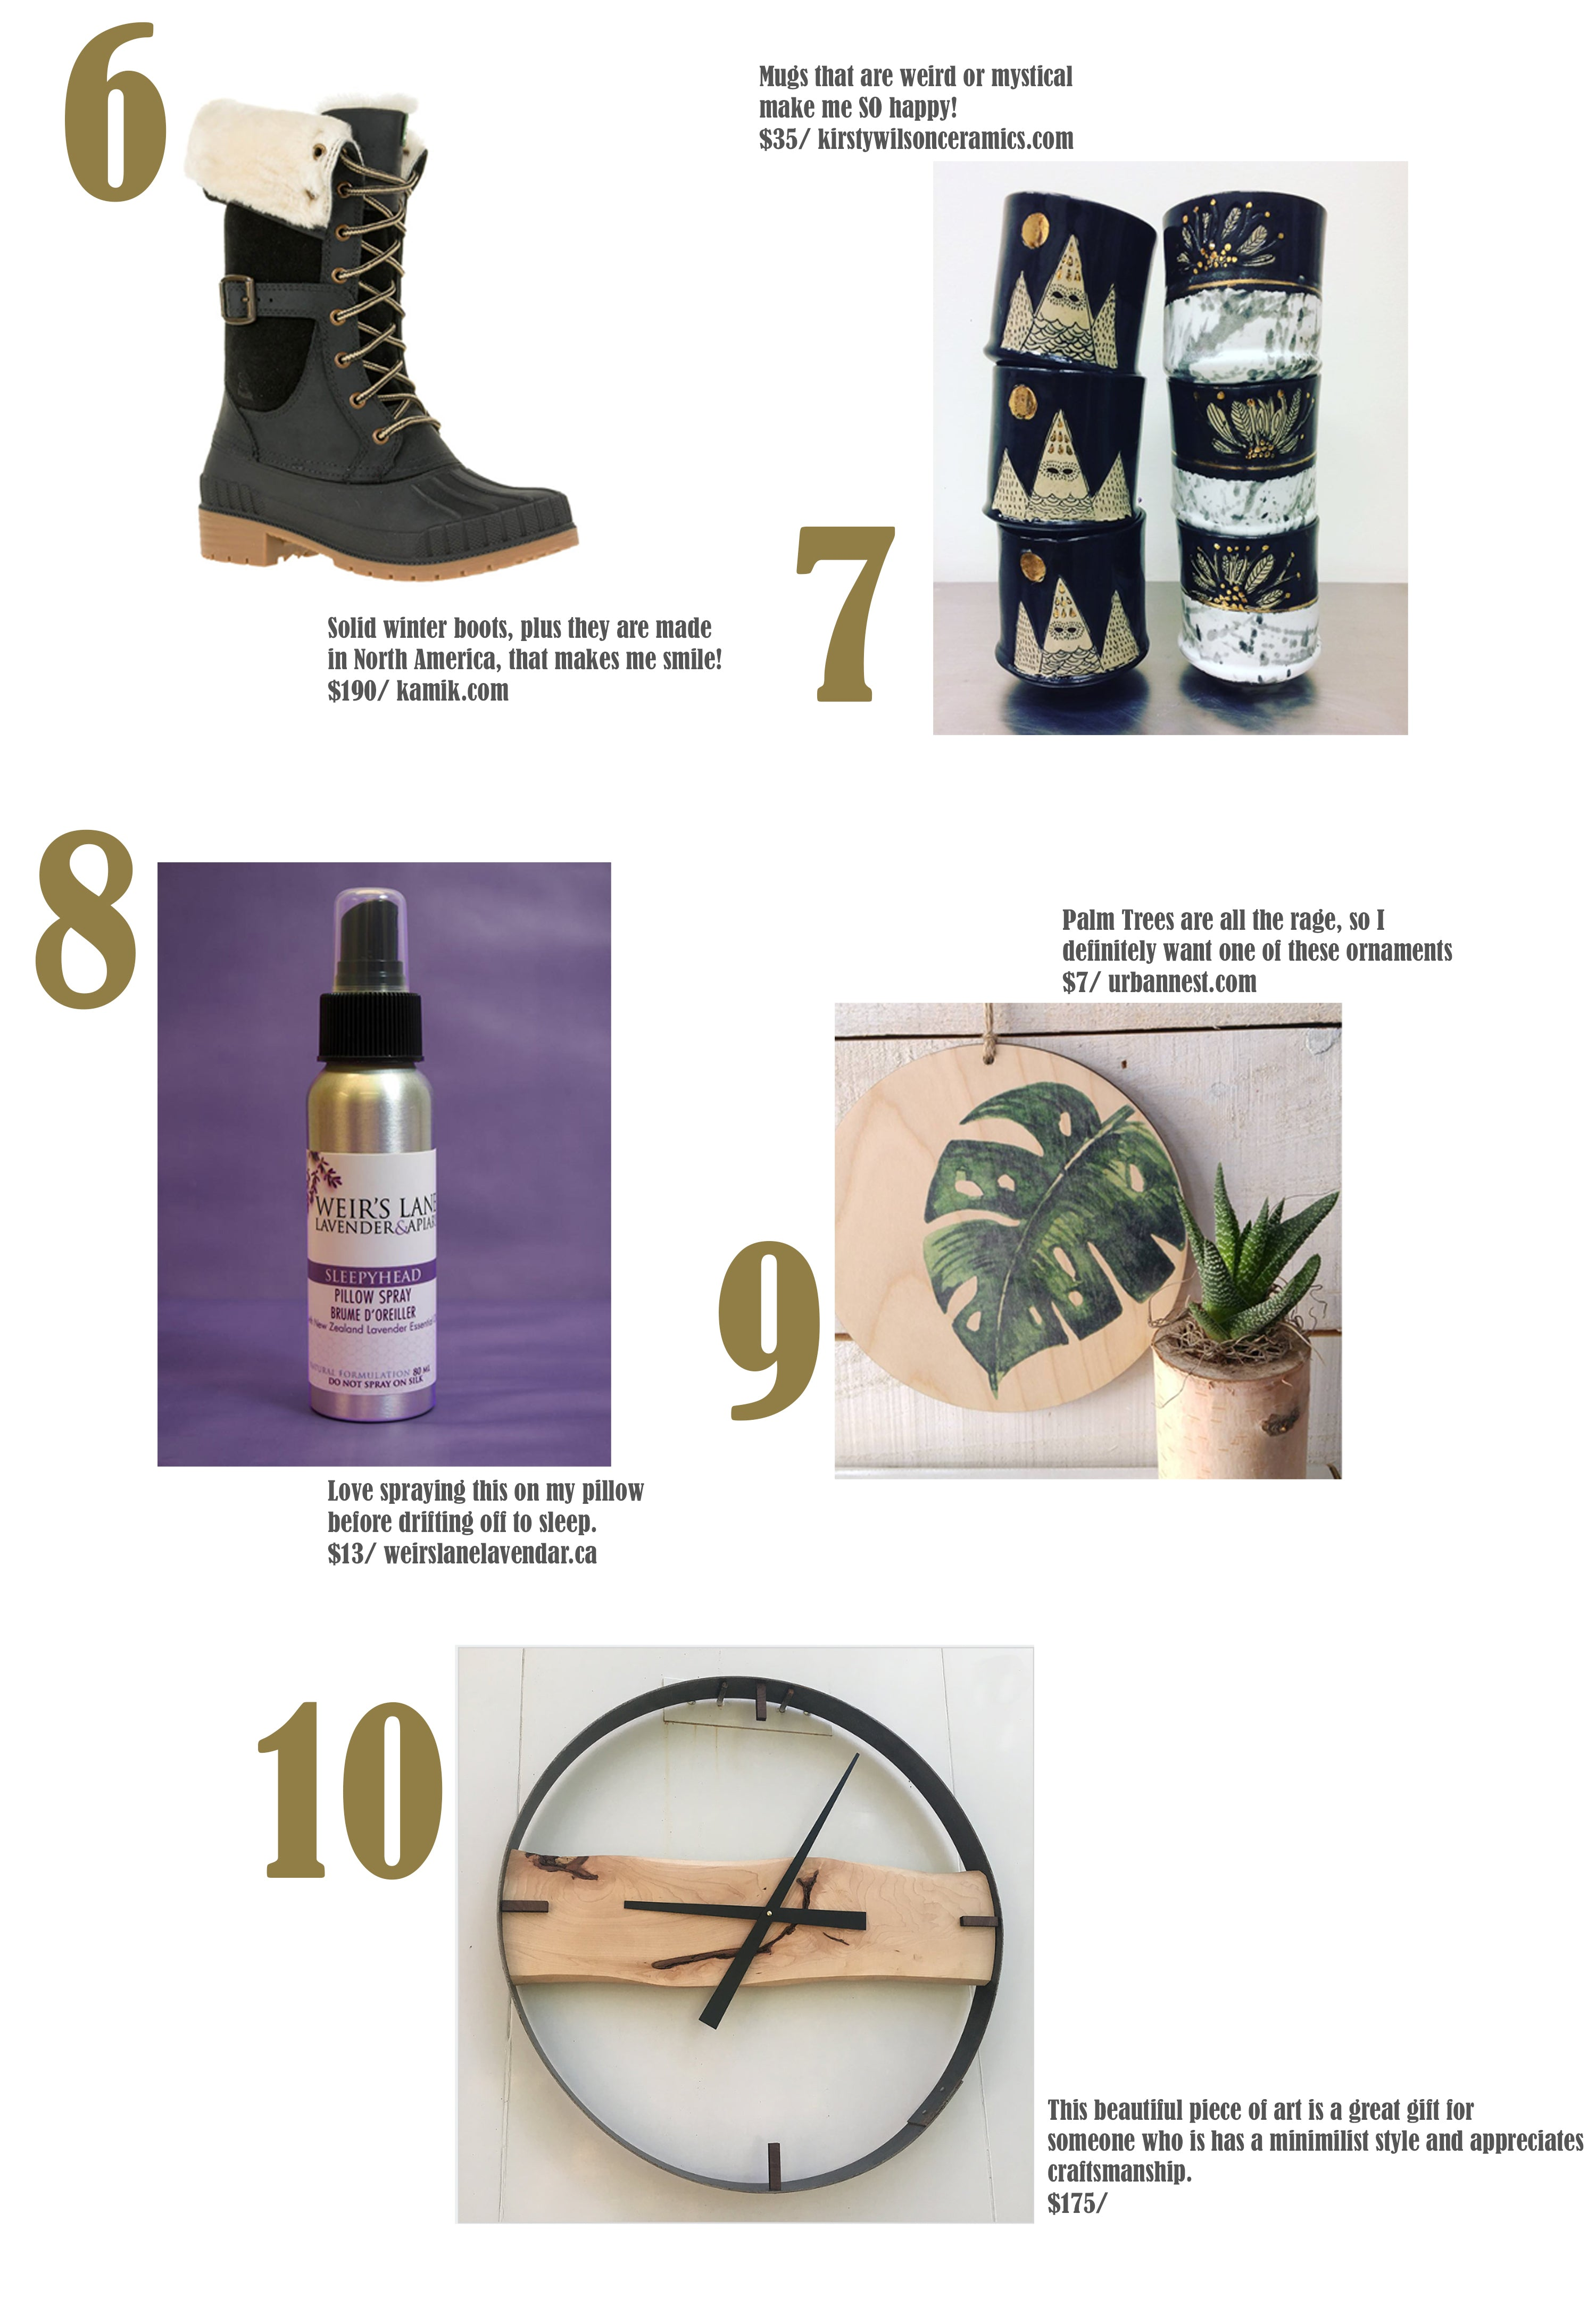 kamik winter boots, kristy wilson ceramics, weirs lane lavendar, urban nest decor